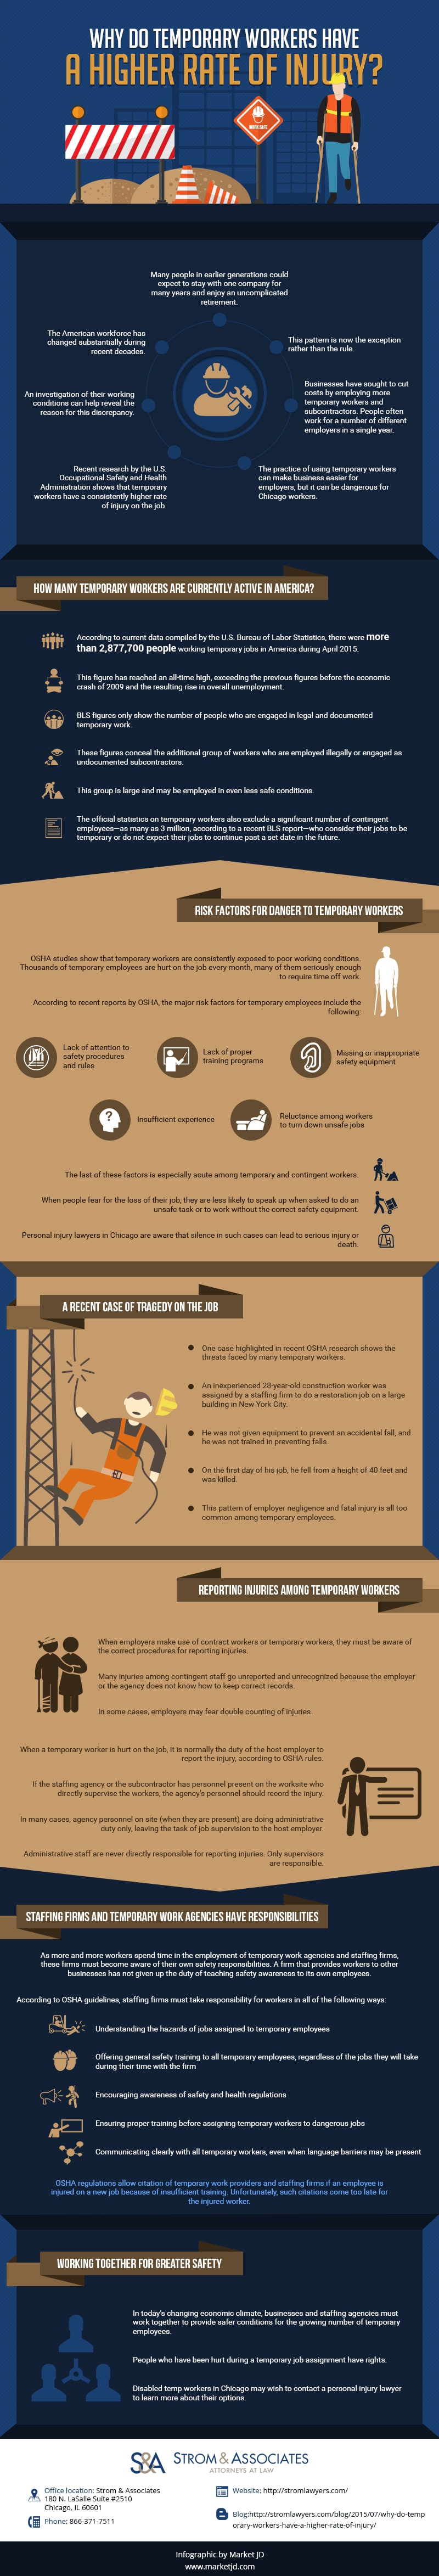 Temporary workers injury infographic